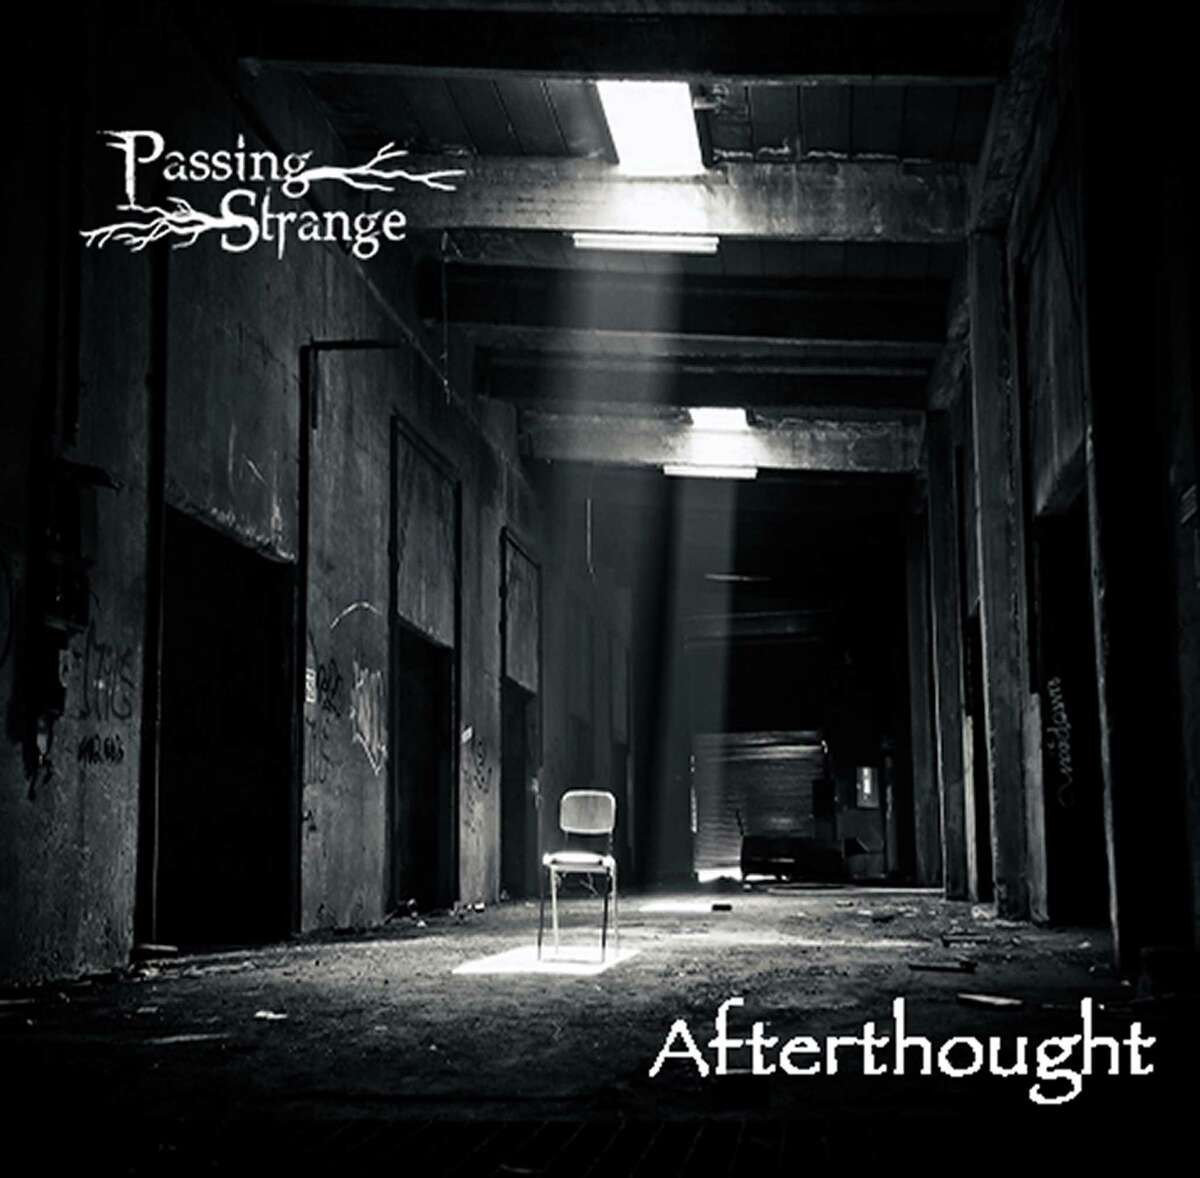 Passing Strange third album is called Afterthought.